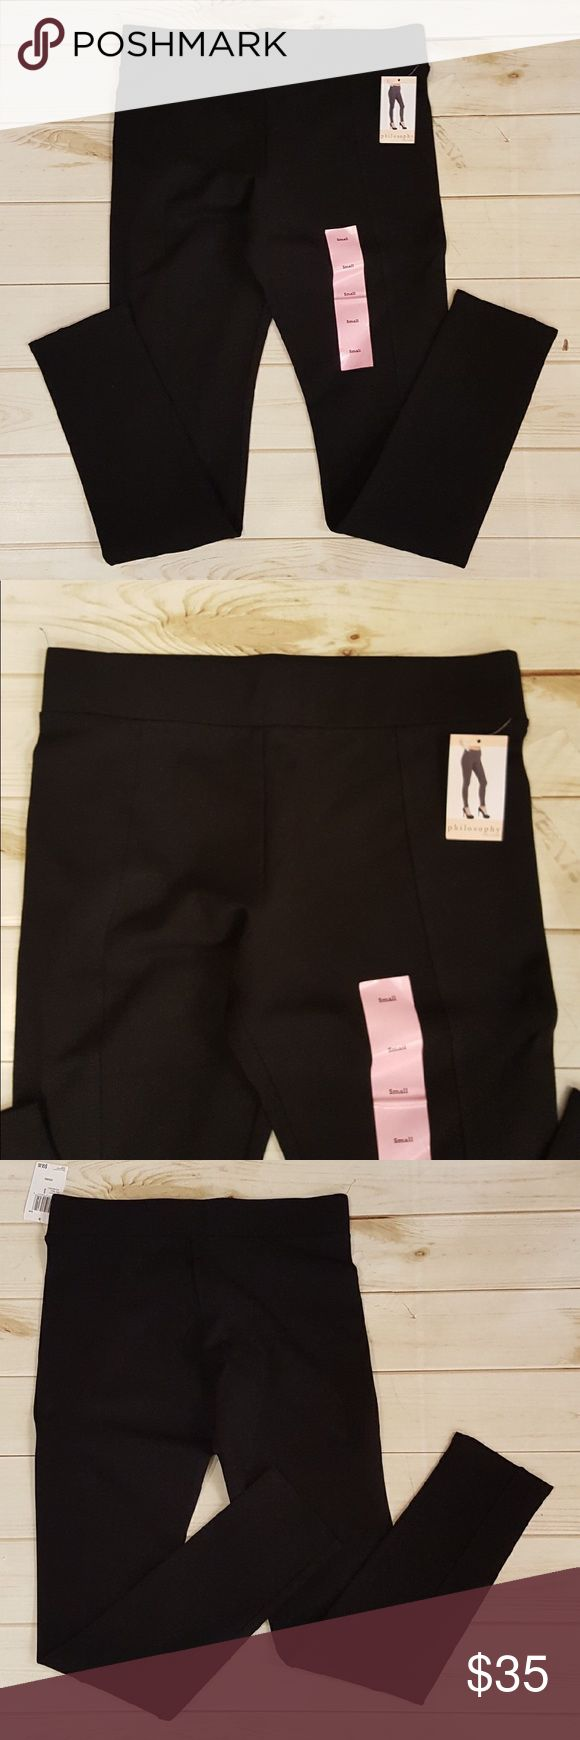 Philosophy women's black leggings! Size small. NWT Thick leggings with slimming lines down the legs! (P 236) Philosophy Pants Leggings